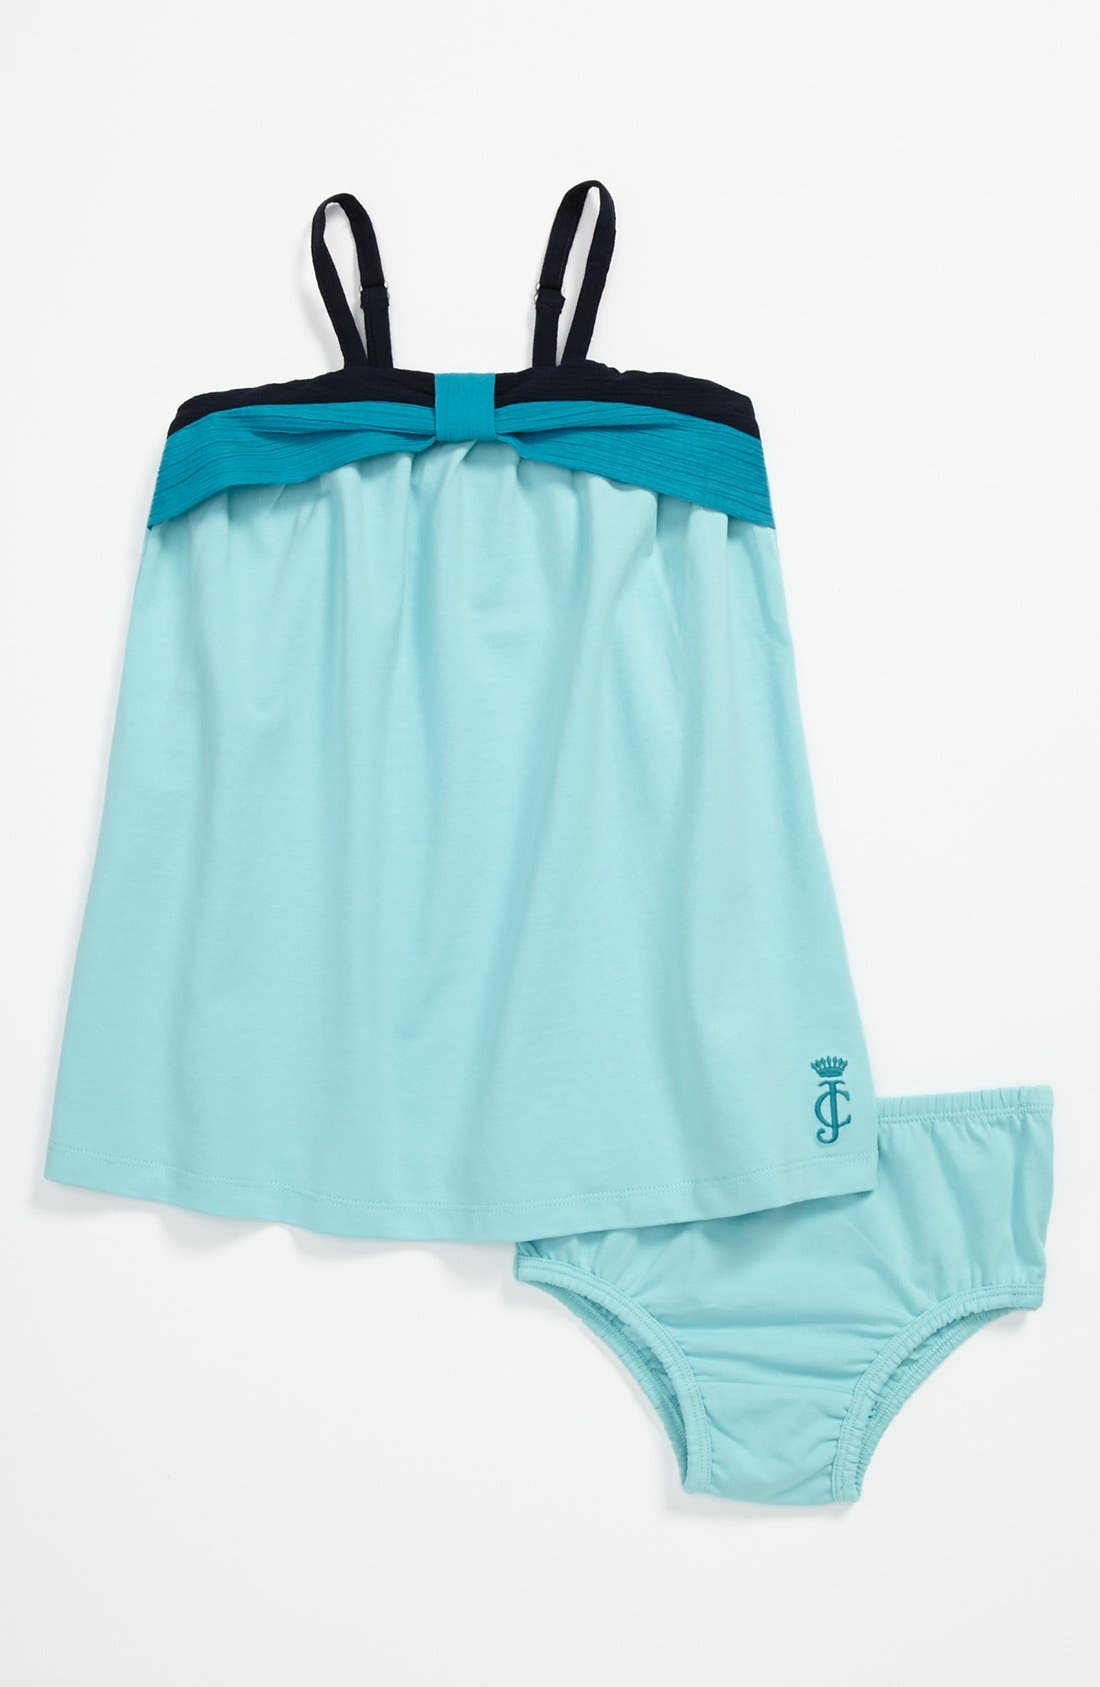 Alternate Image 1 Selected - Juicy Couture Knit Dress & Bloomers (Baby)